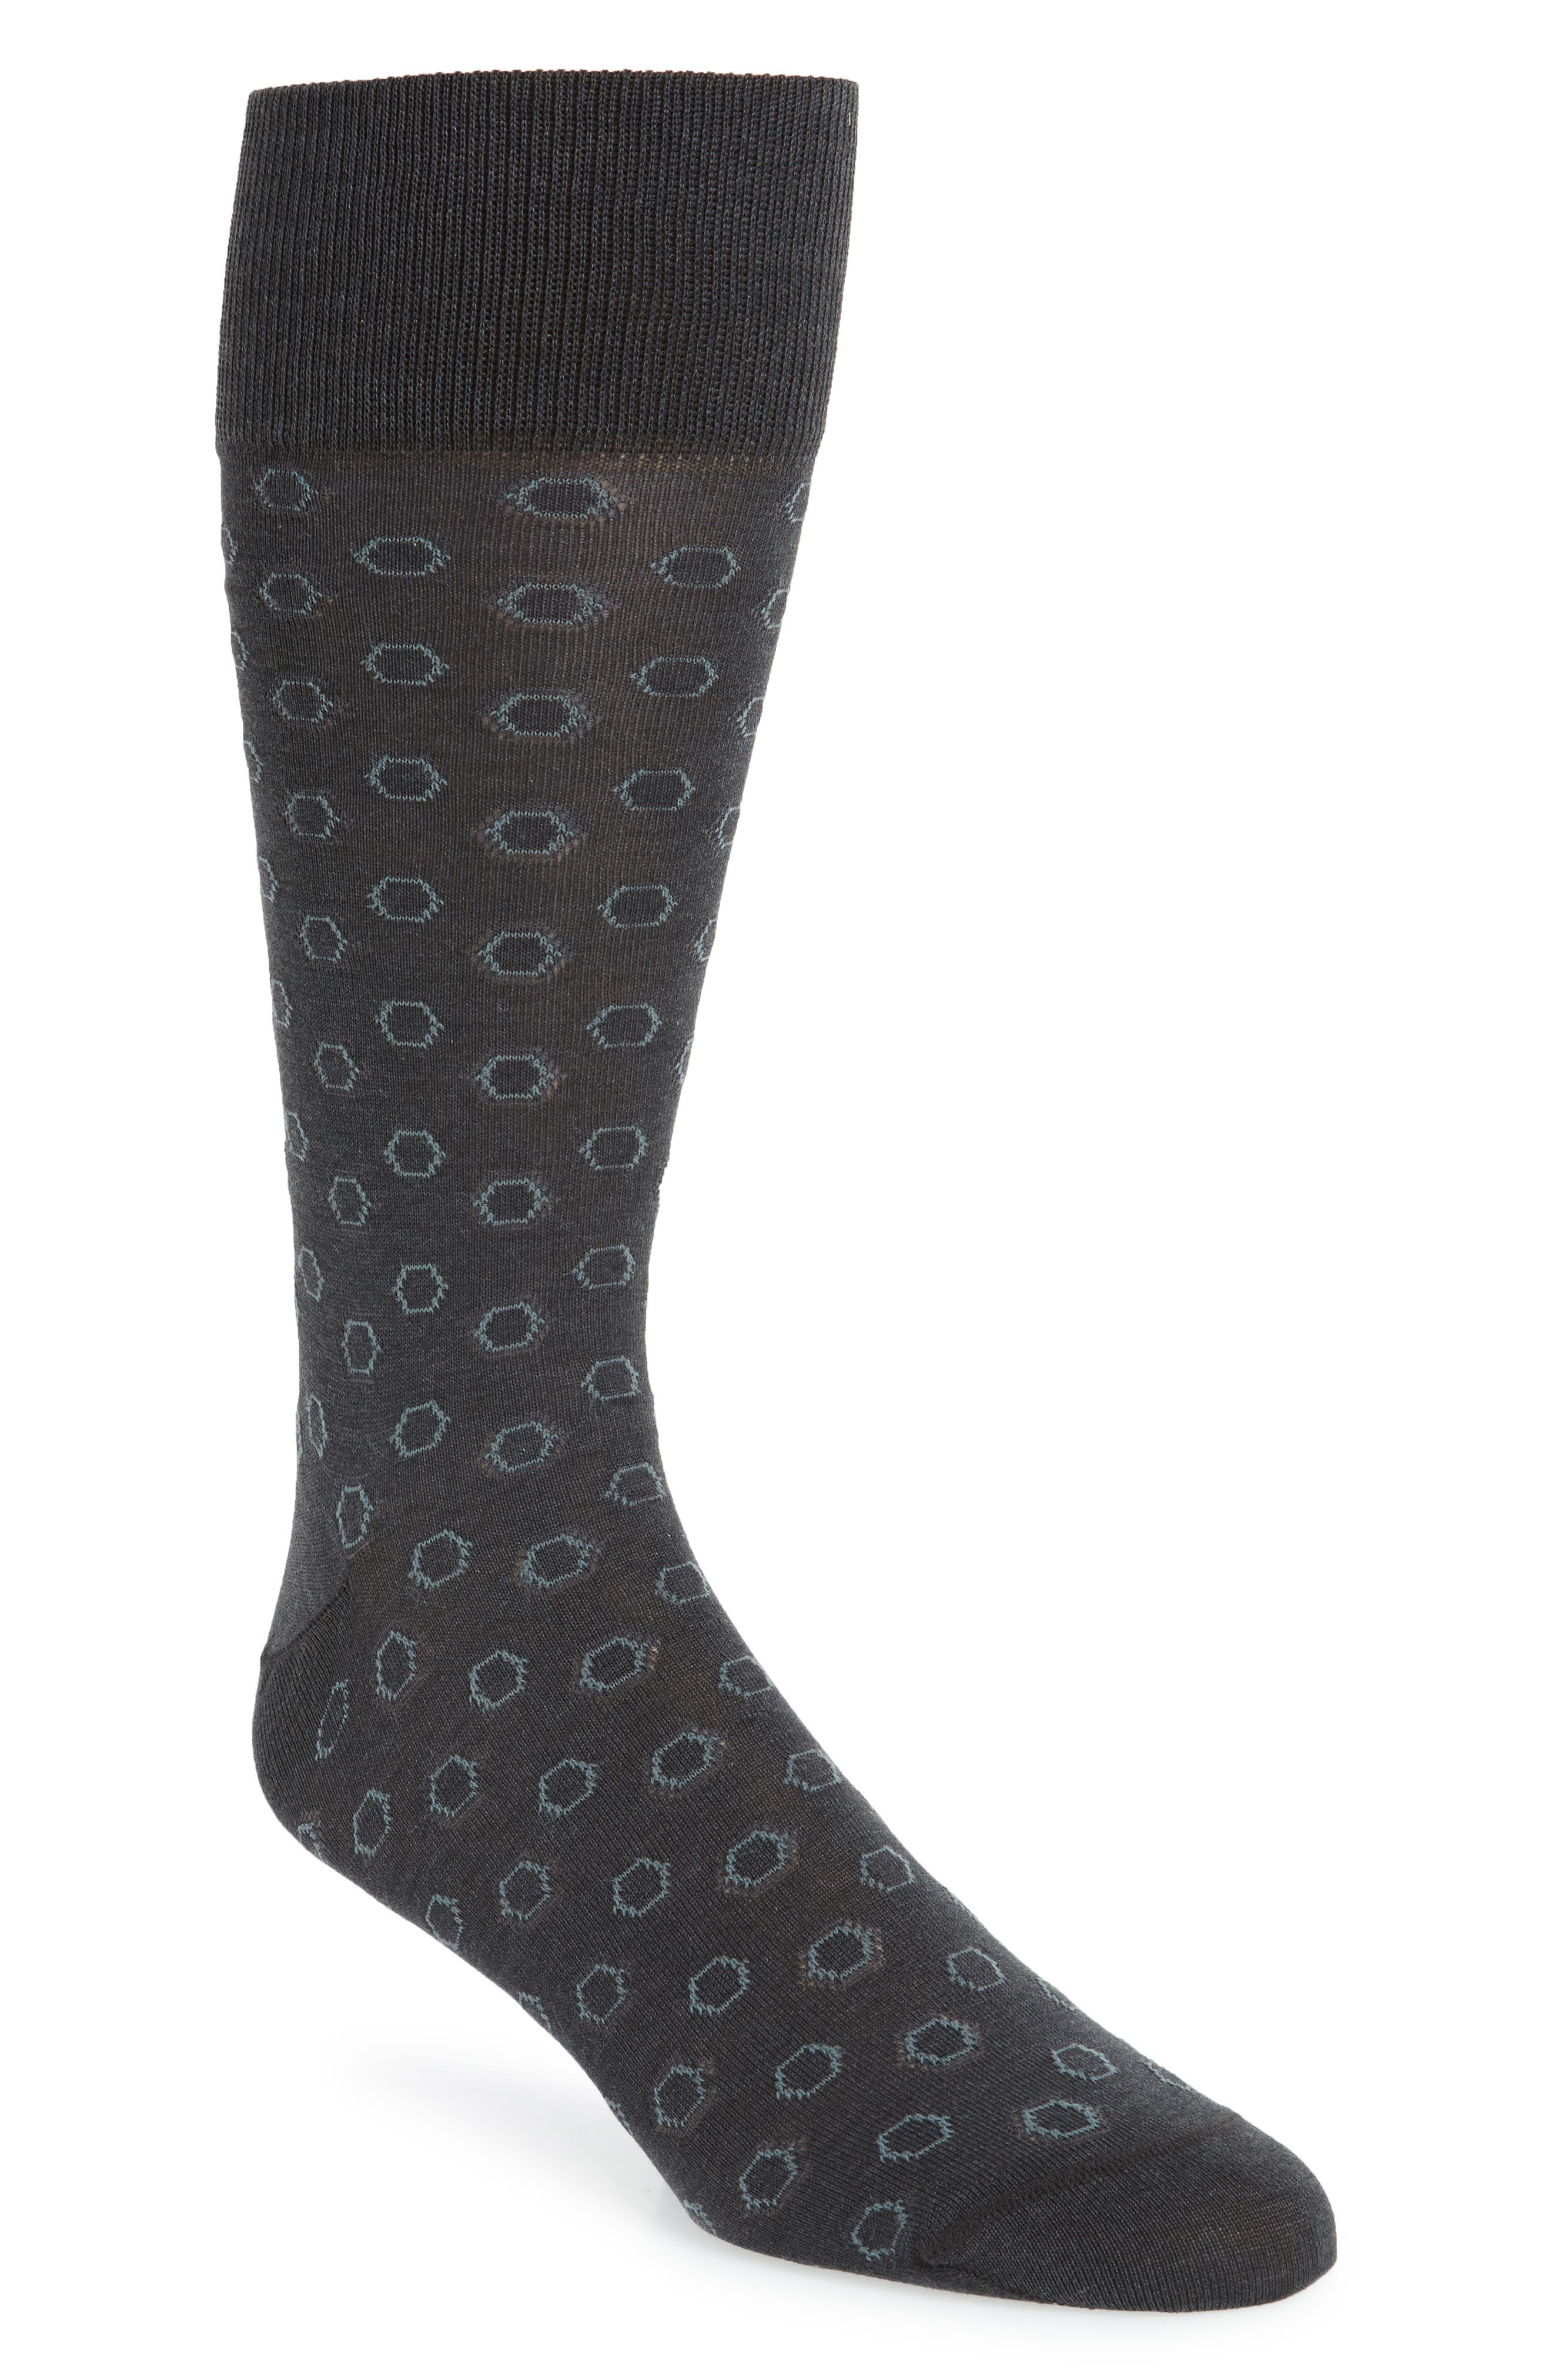 Hexagon Socks,                             Main thumbnail 1, color,                             Charcoal Heather